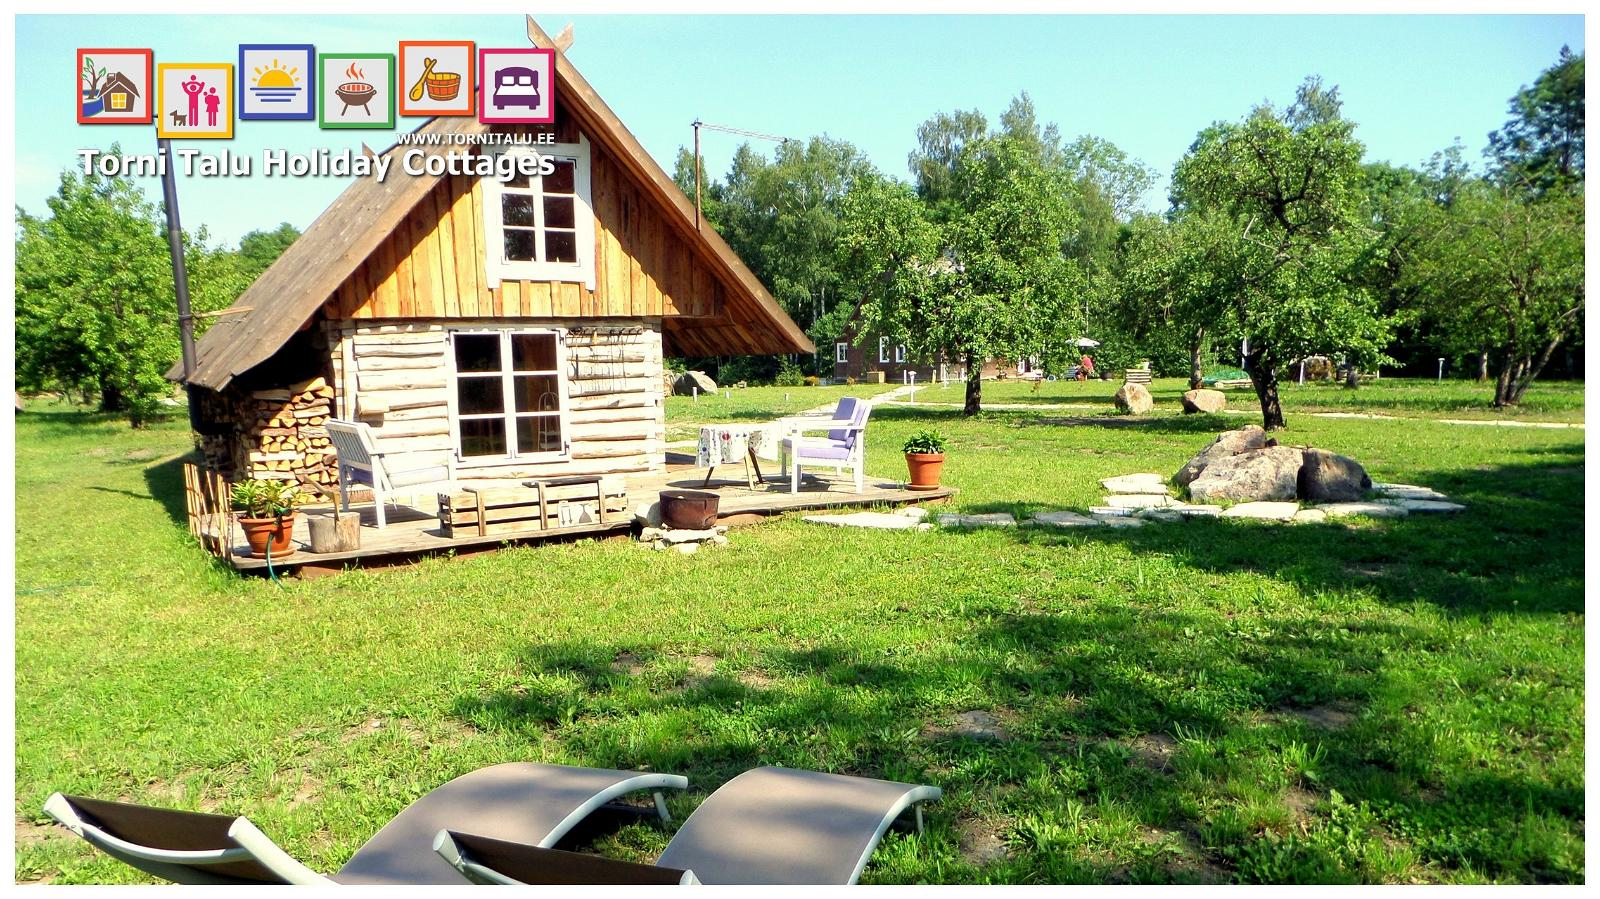 torni talu holiday cottages barn house with a bath and a